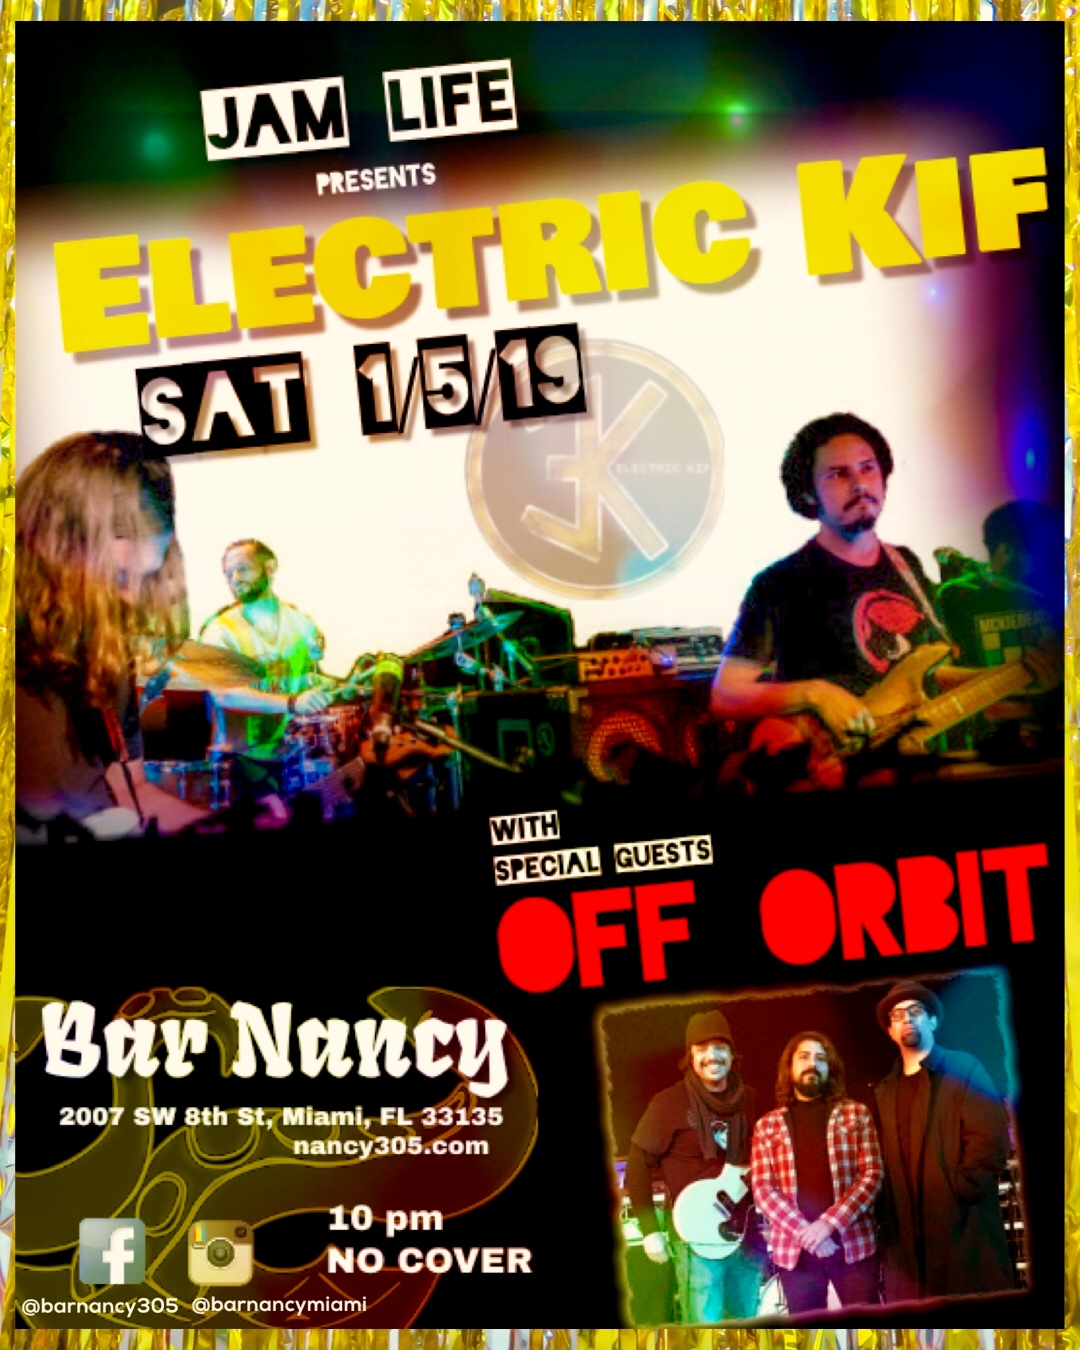 ELECTRIC KIF Presented by JAM LIFE - Special Guest OFF ORBIT - SAT JAN 5, 2019 - 10PM - NO COVER